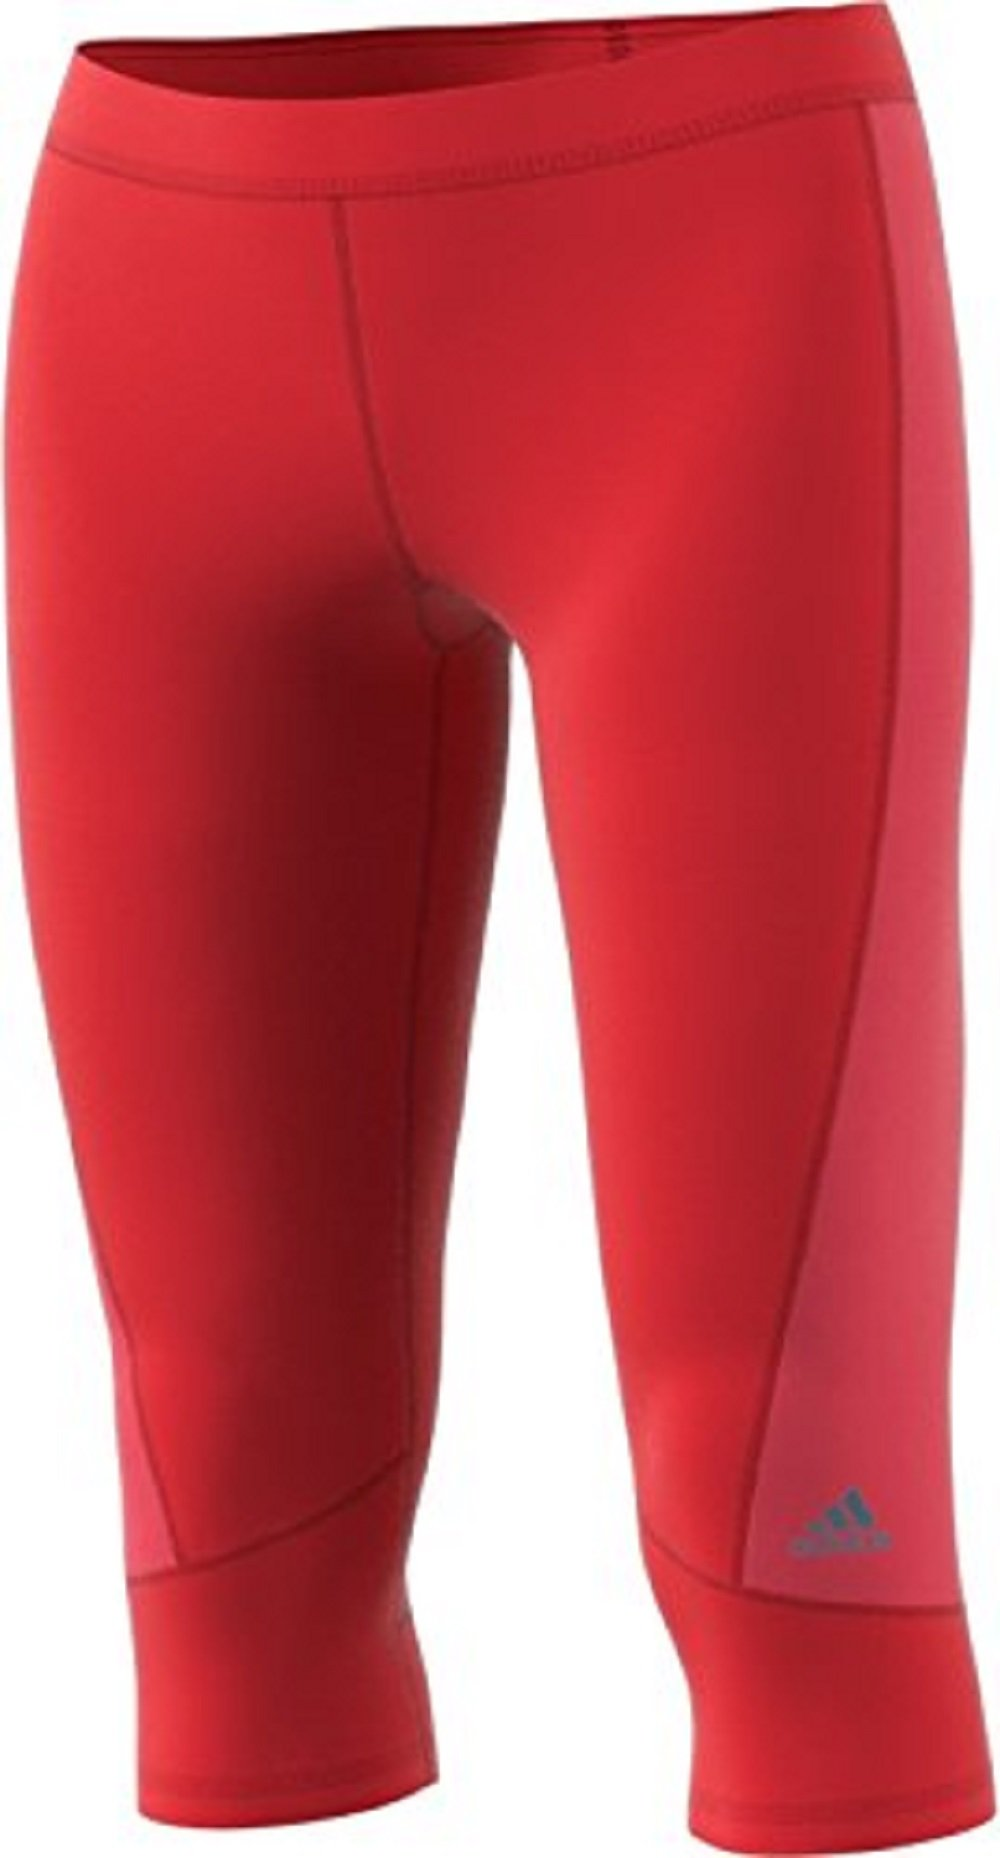 adidas Women's Techfit Capris, Core Red/Core Pink, X-Small by adidas (Image #1)